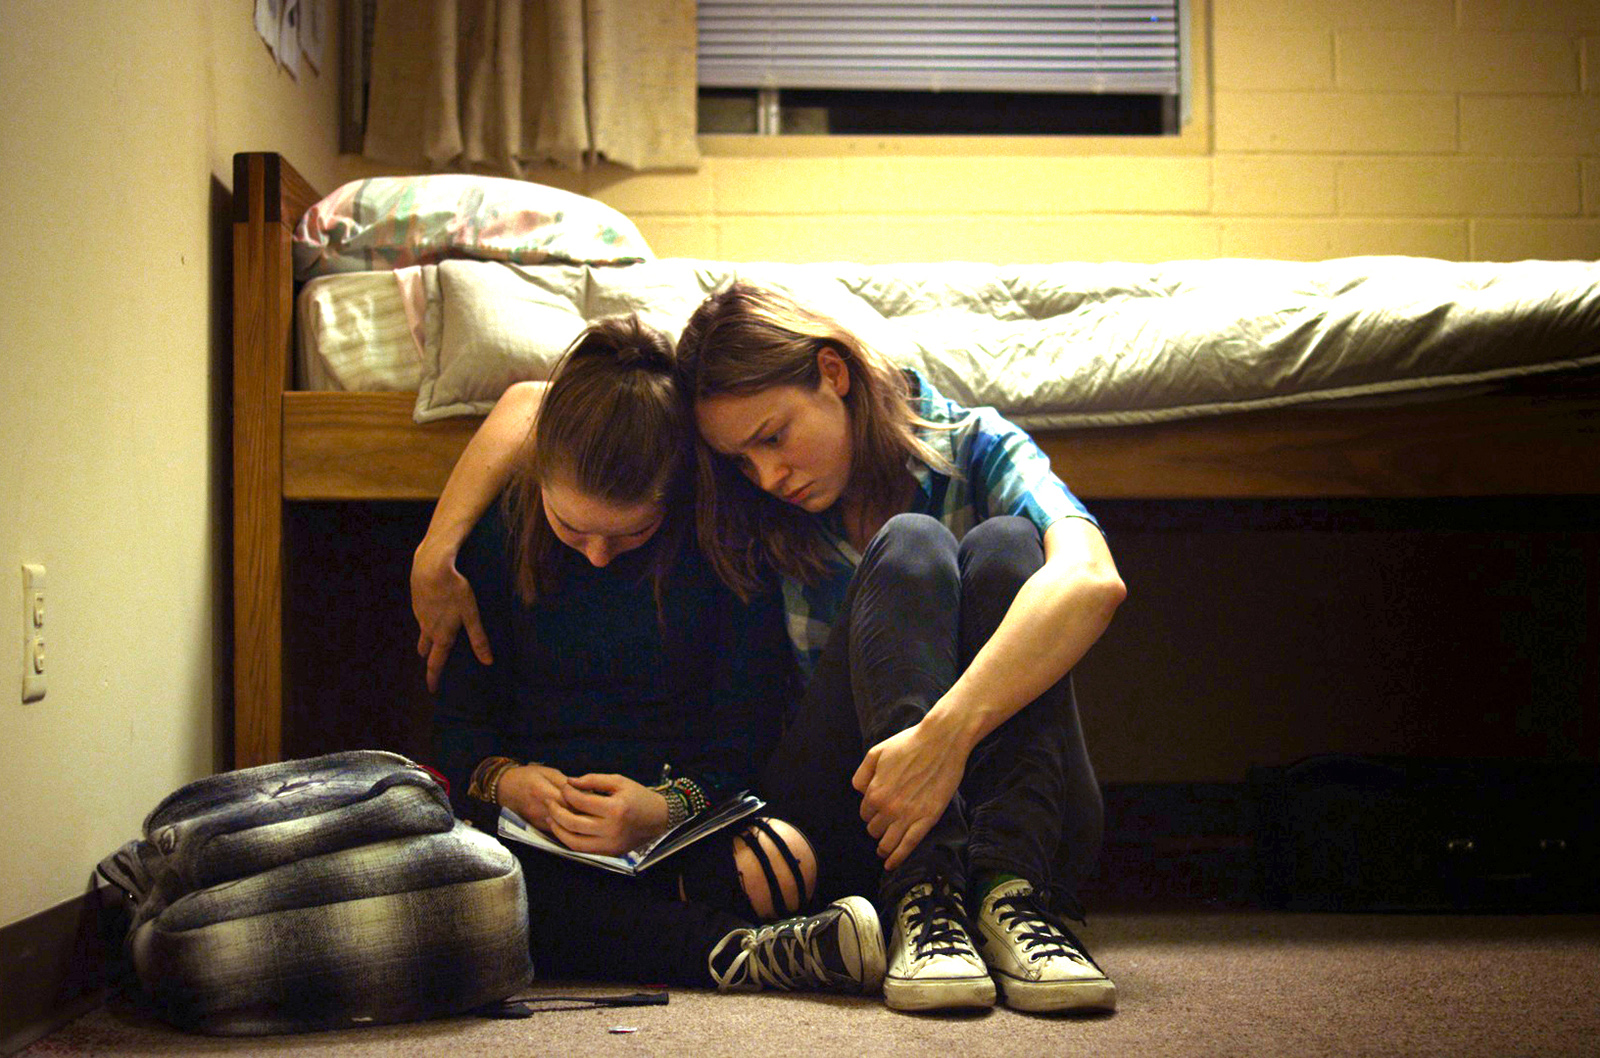 States of Grace (Short Term 12) - Destin Cretton - 2014 dans Destin Cretton 213429